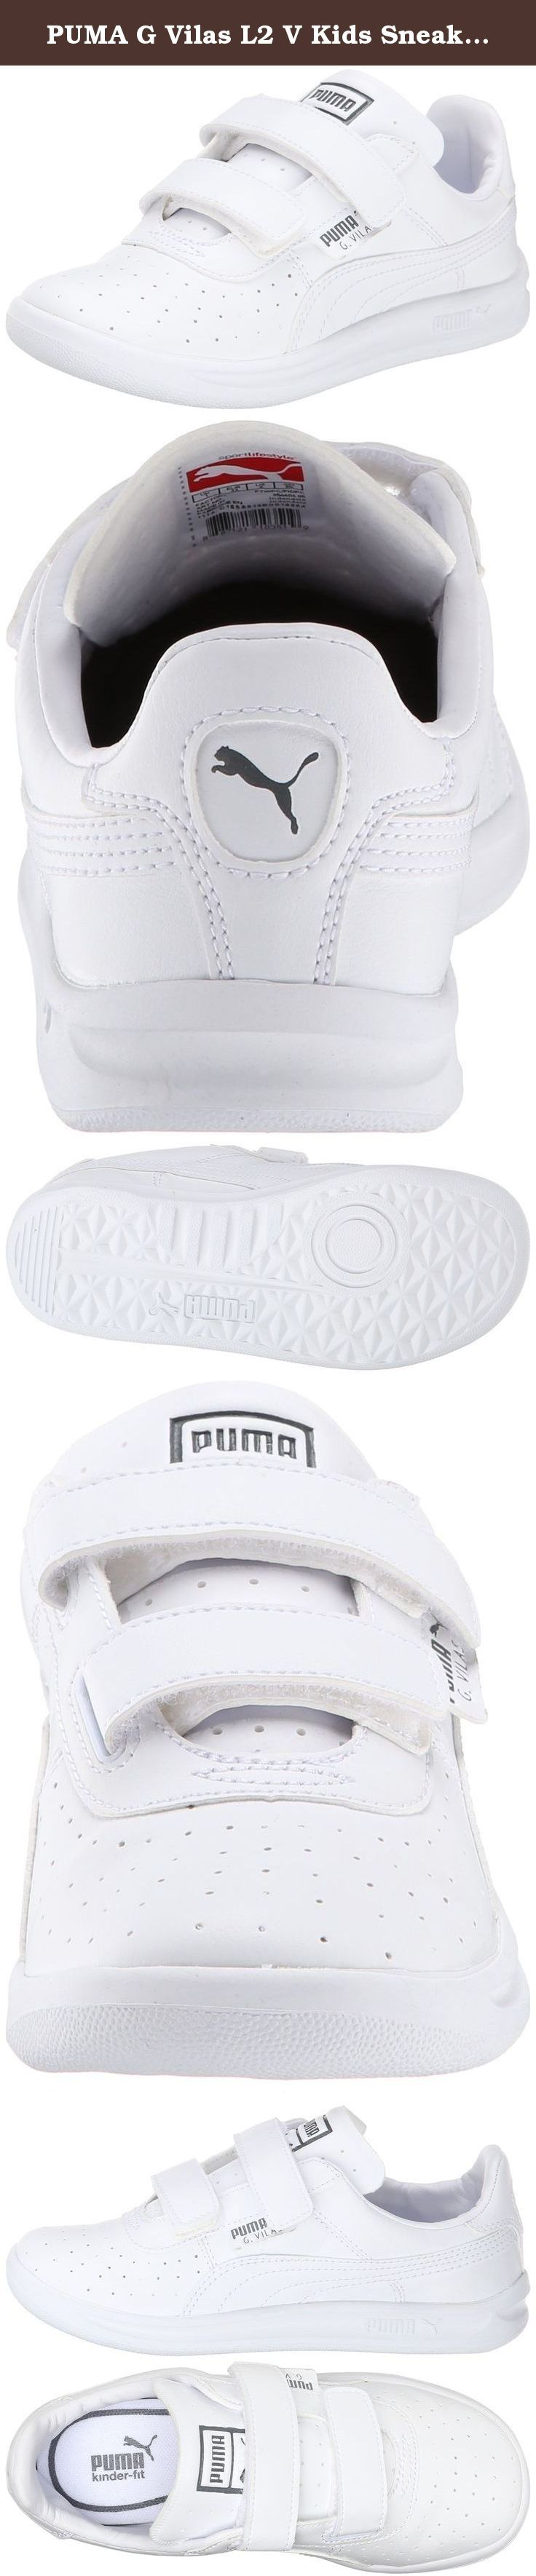 PUMA G Vilas L2 V Kids Sneaker (Toddler/Little Kid/Big Kid), White/Steel Gray,7 M US Toddler. Perforated sneaker featuring dual hook-and-loop straps and tonal Formstrip overlay at sides. Padded tongue and collar.